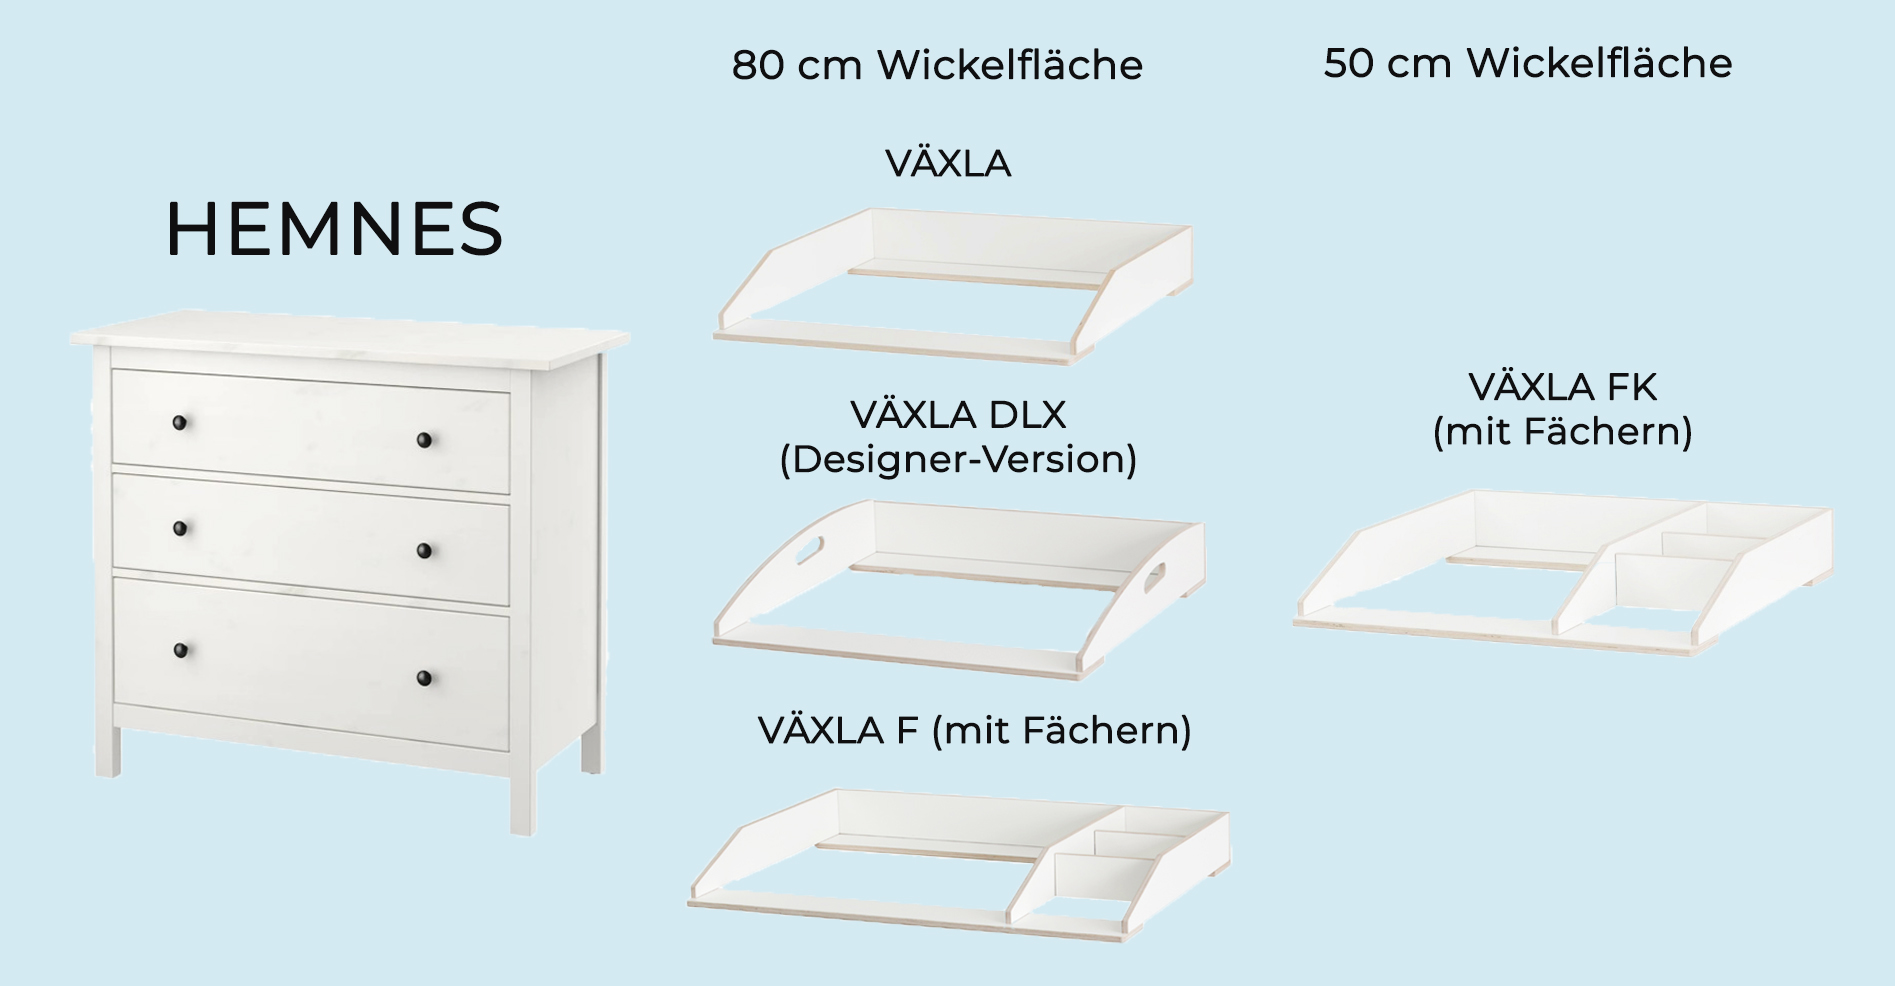 Diy Ikea Wickelkommode Dank Praktischem Wickelaufsatz New Swedish Design